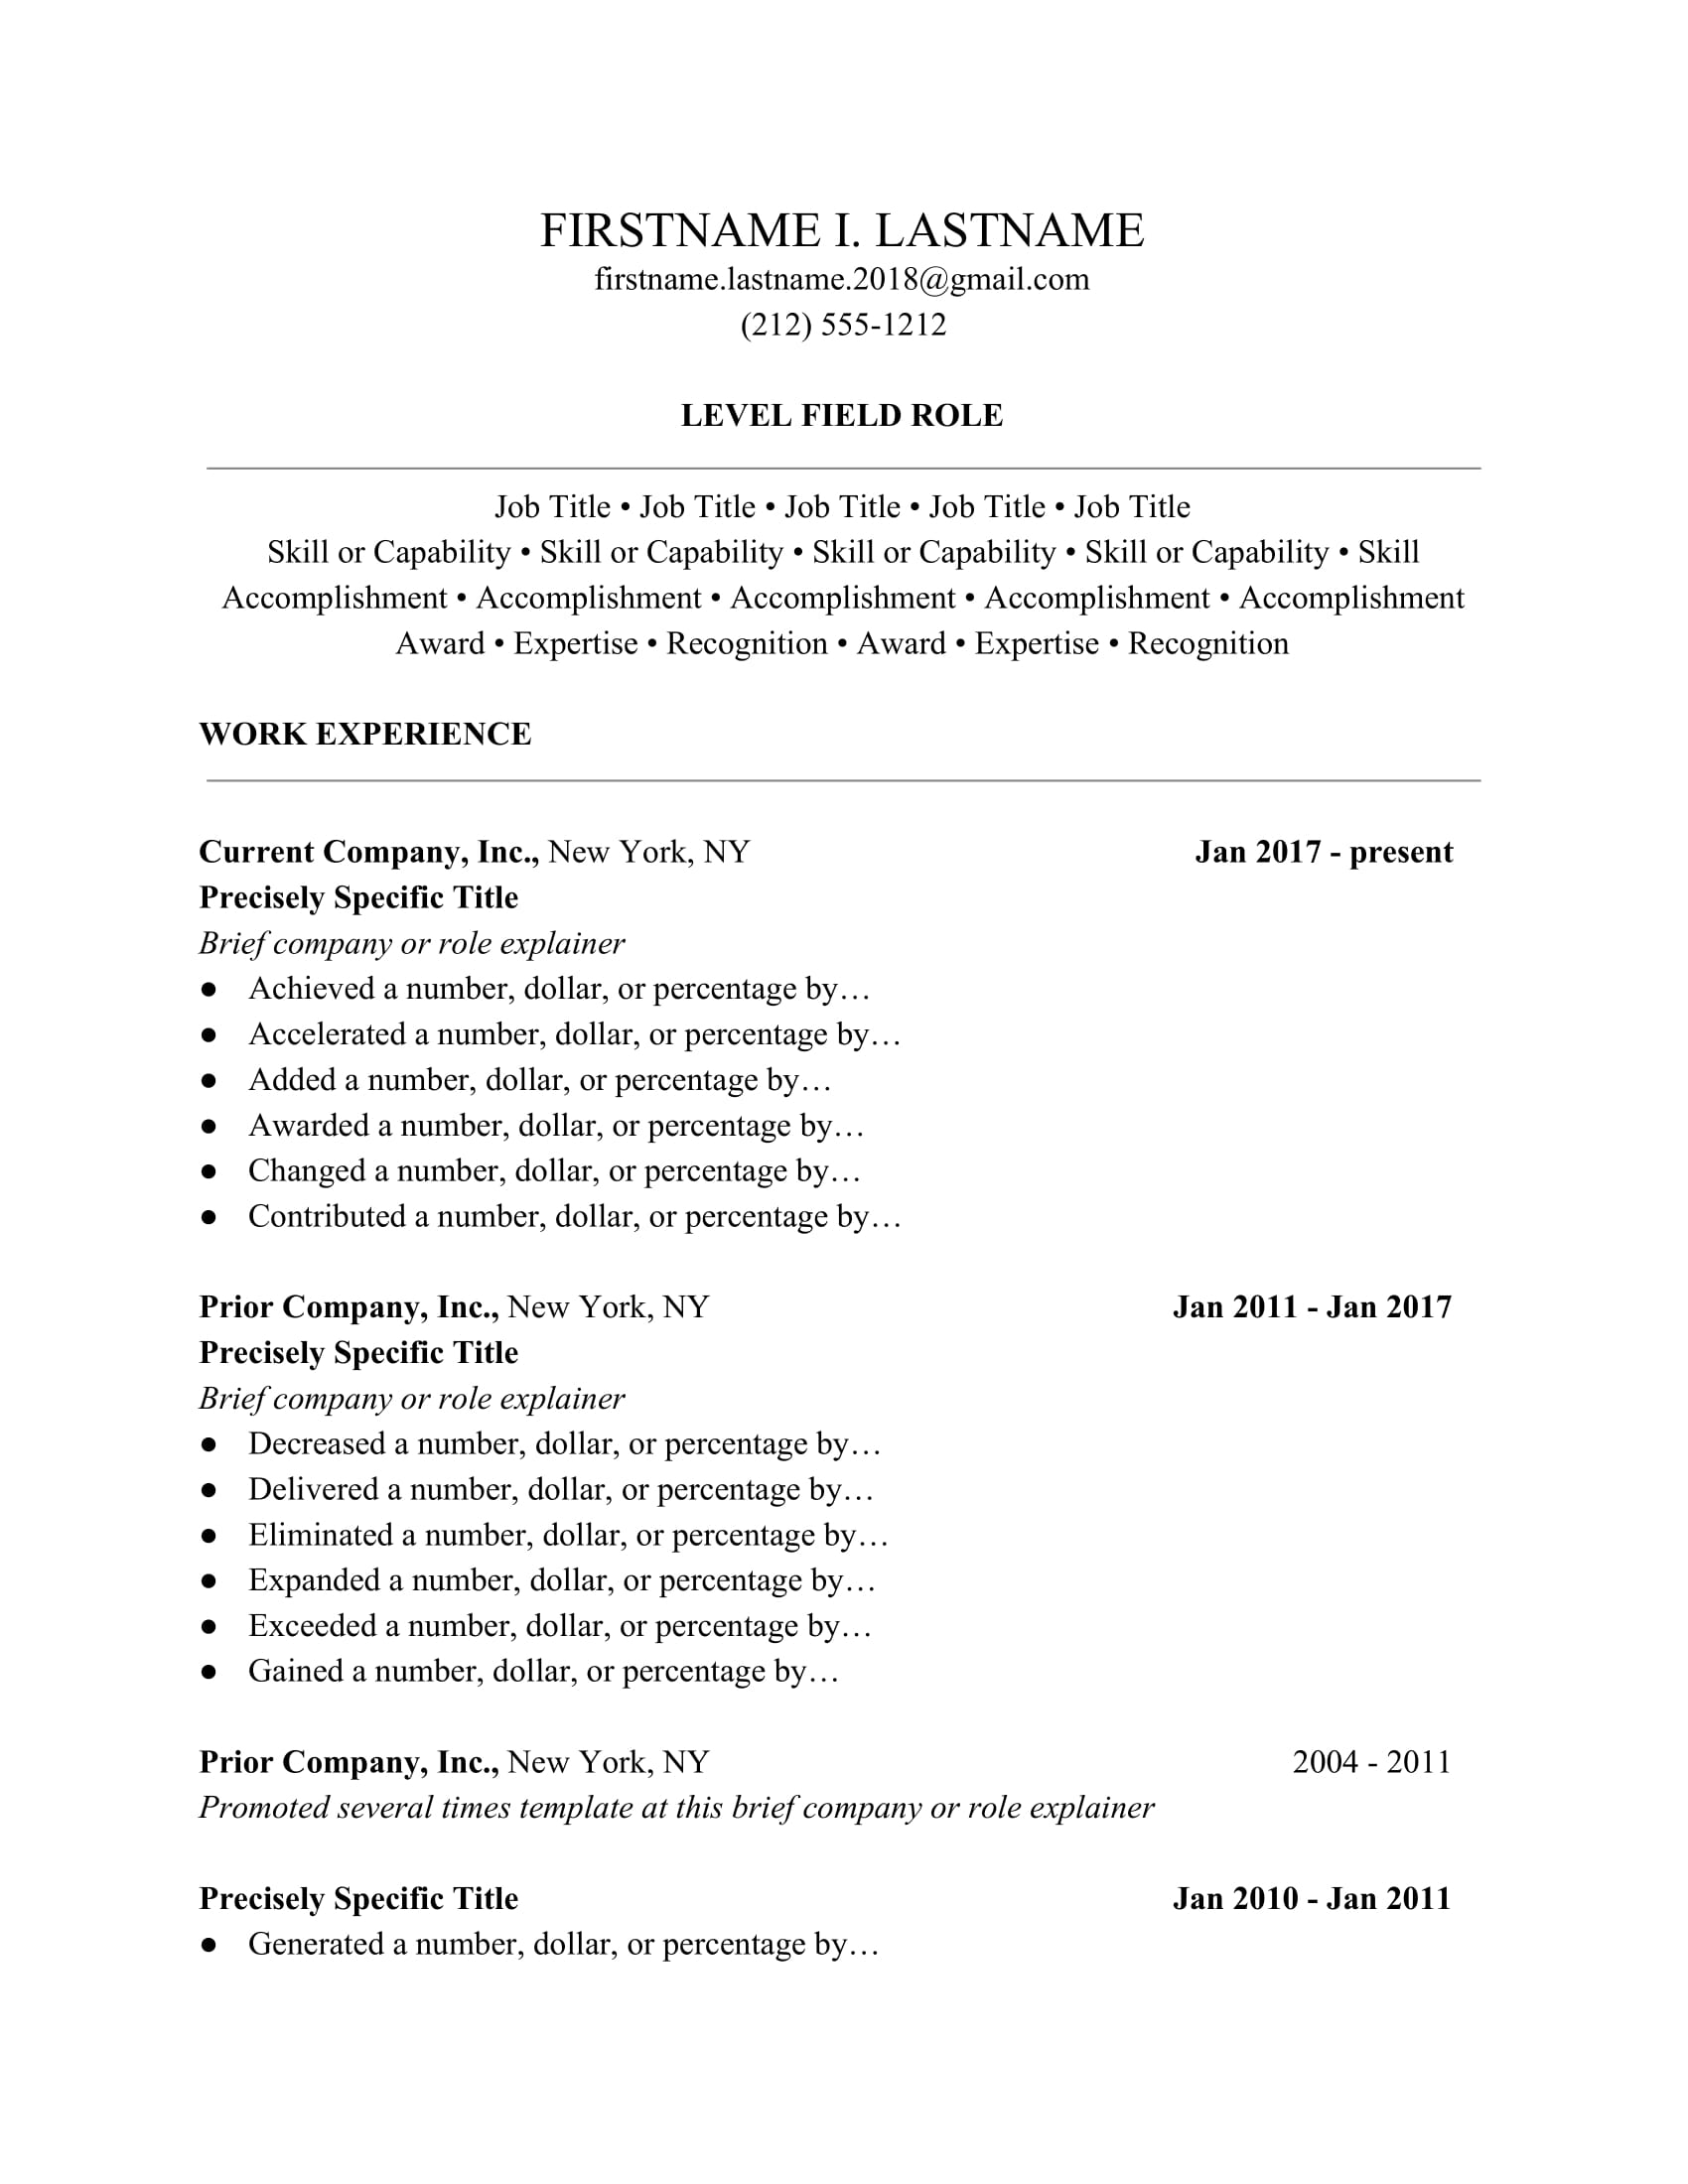 Ladders 2020 Resume Guide Professional Resume Templates